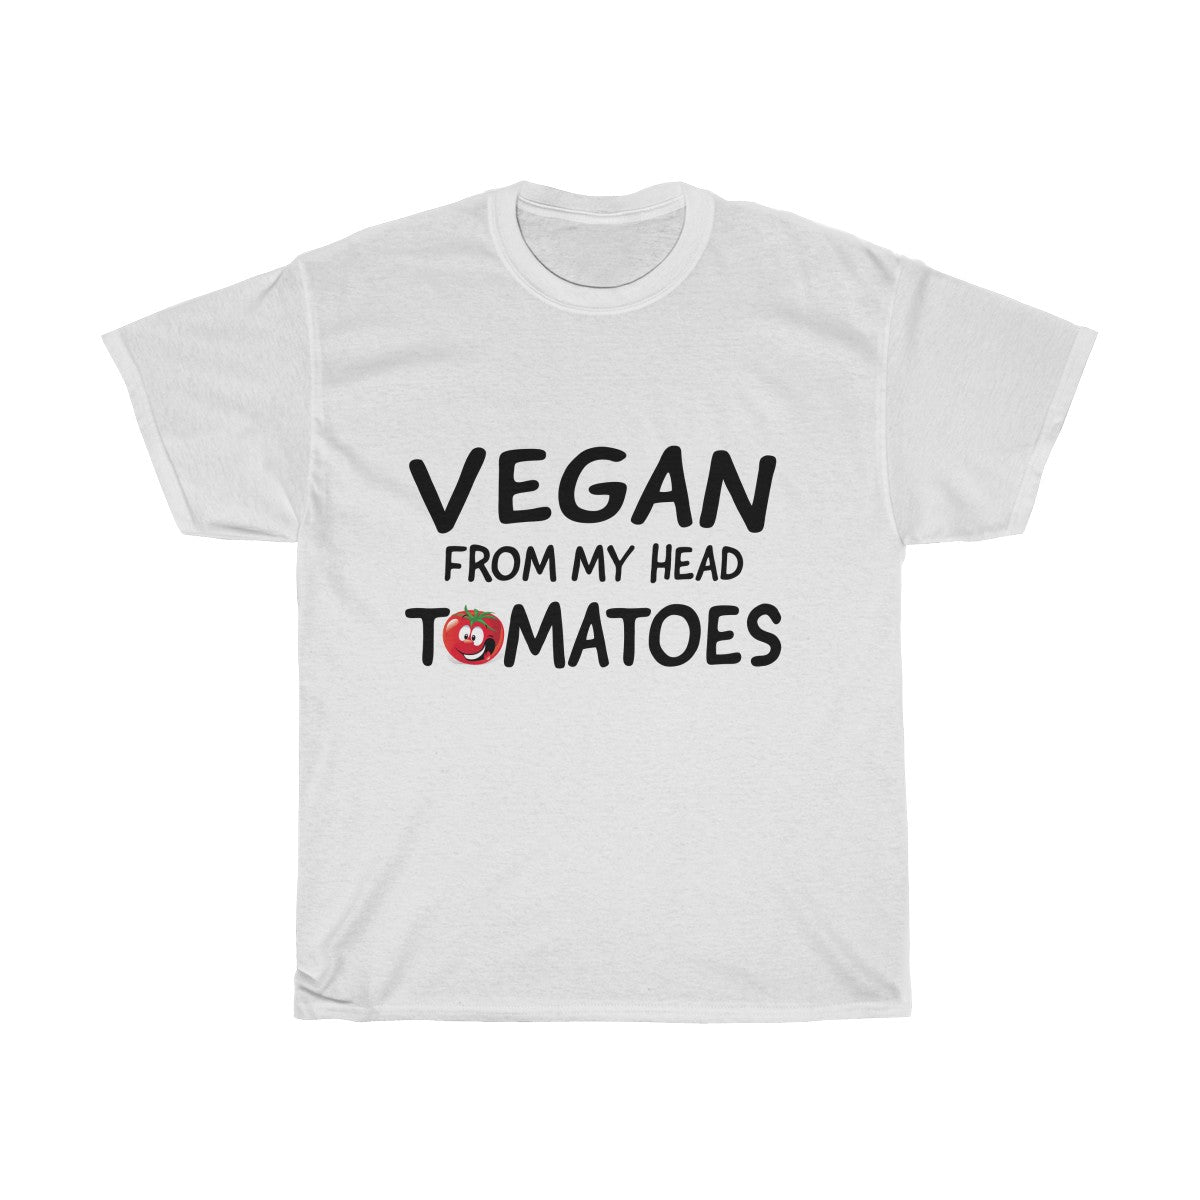 Vegan From My Head Tomatoes - Unisex T-Shirt - My Vegan Menu